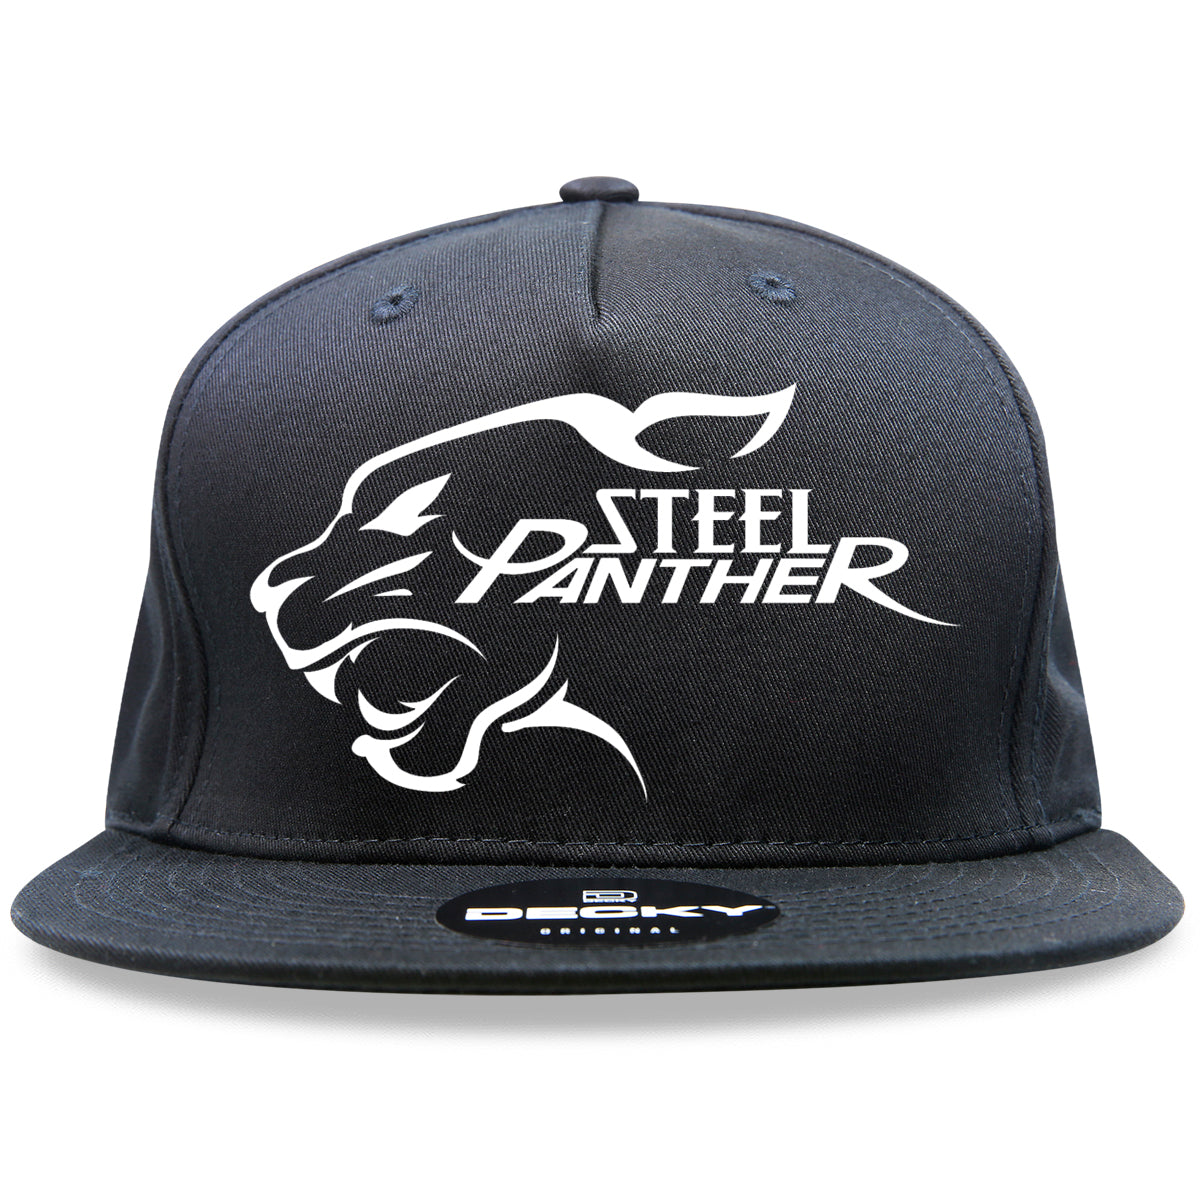 Panther Head '21 Hat